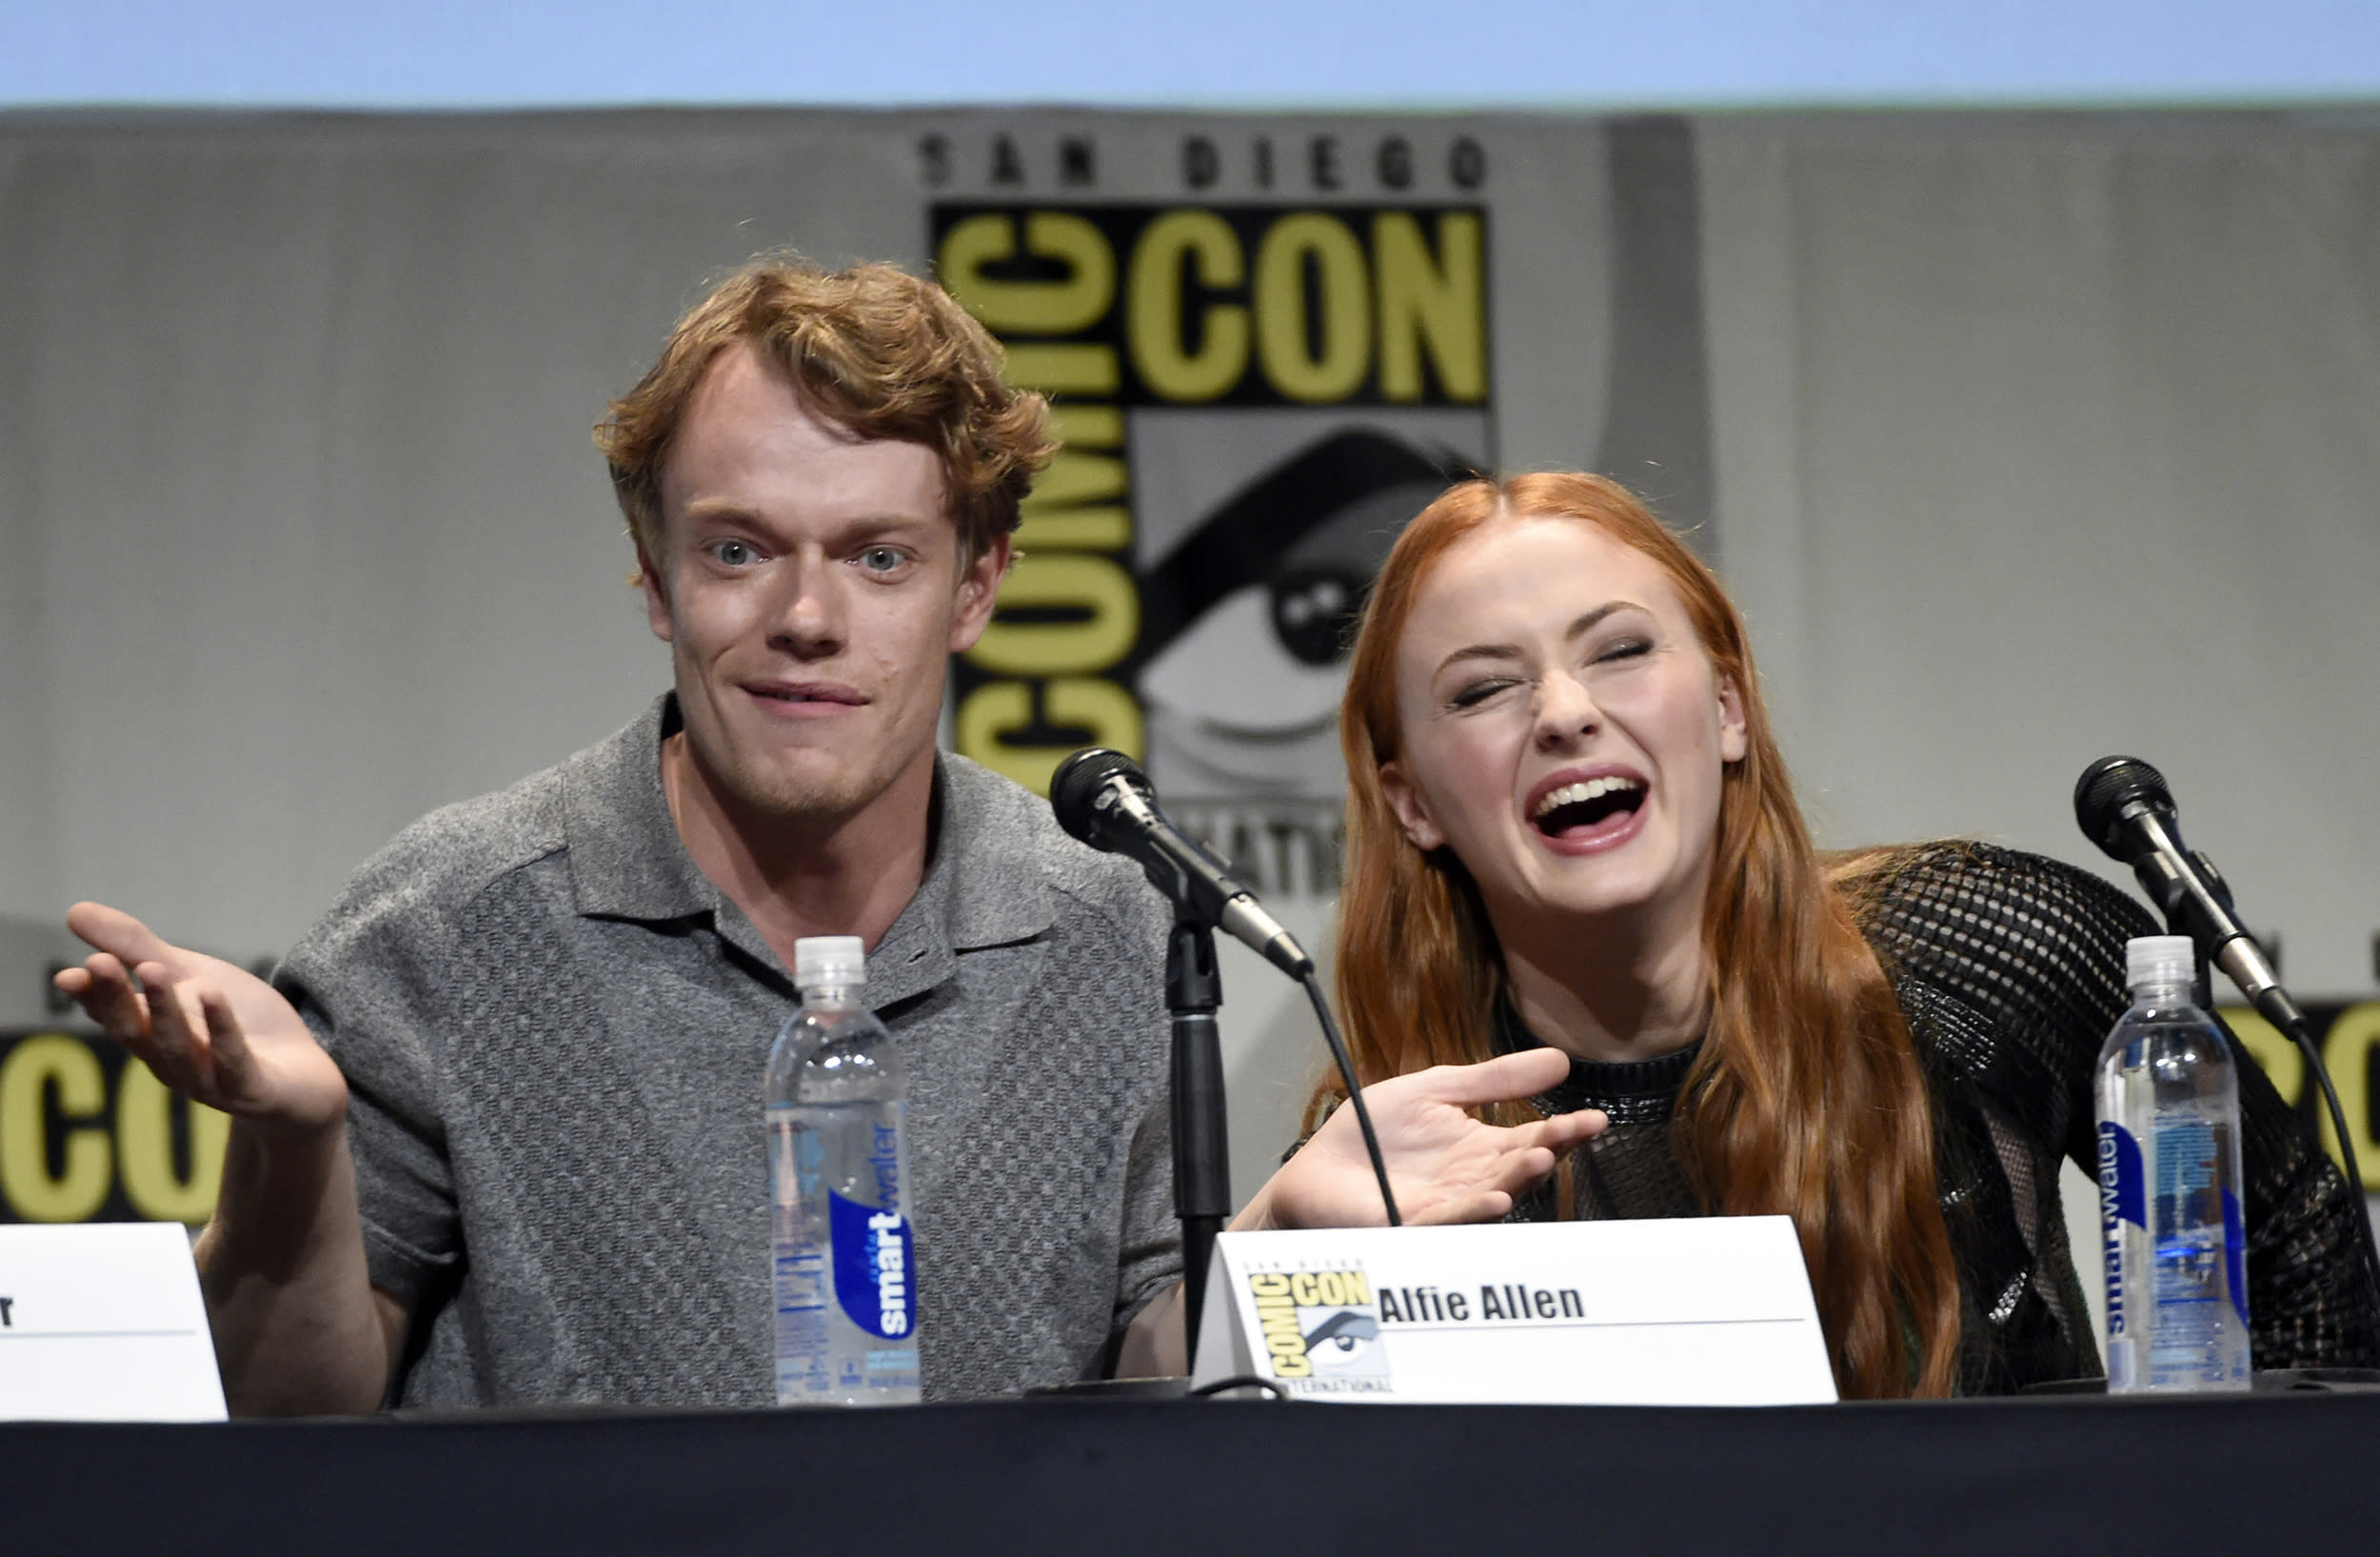 """Alfie Allen, left, and Sophie Turner attend the """"Game of Thrones"""" panel on day 2 of Comic-Con International on Friday, July 10, 2015, in San Diego, Calif. (Photo by Chris Pizzello/Invision/AP)"""